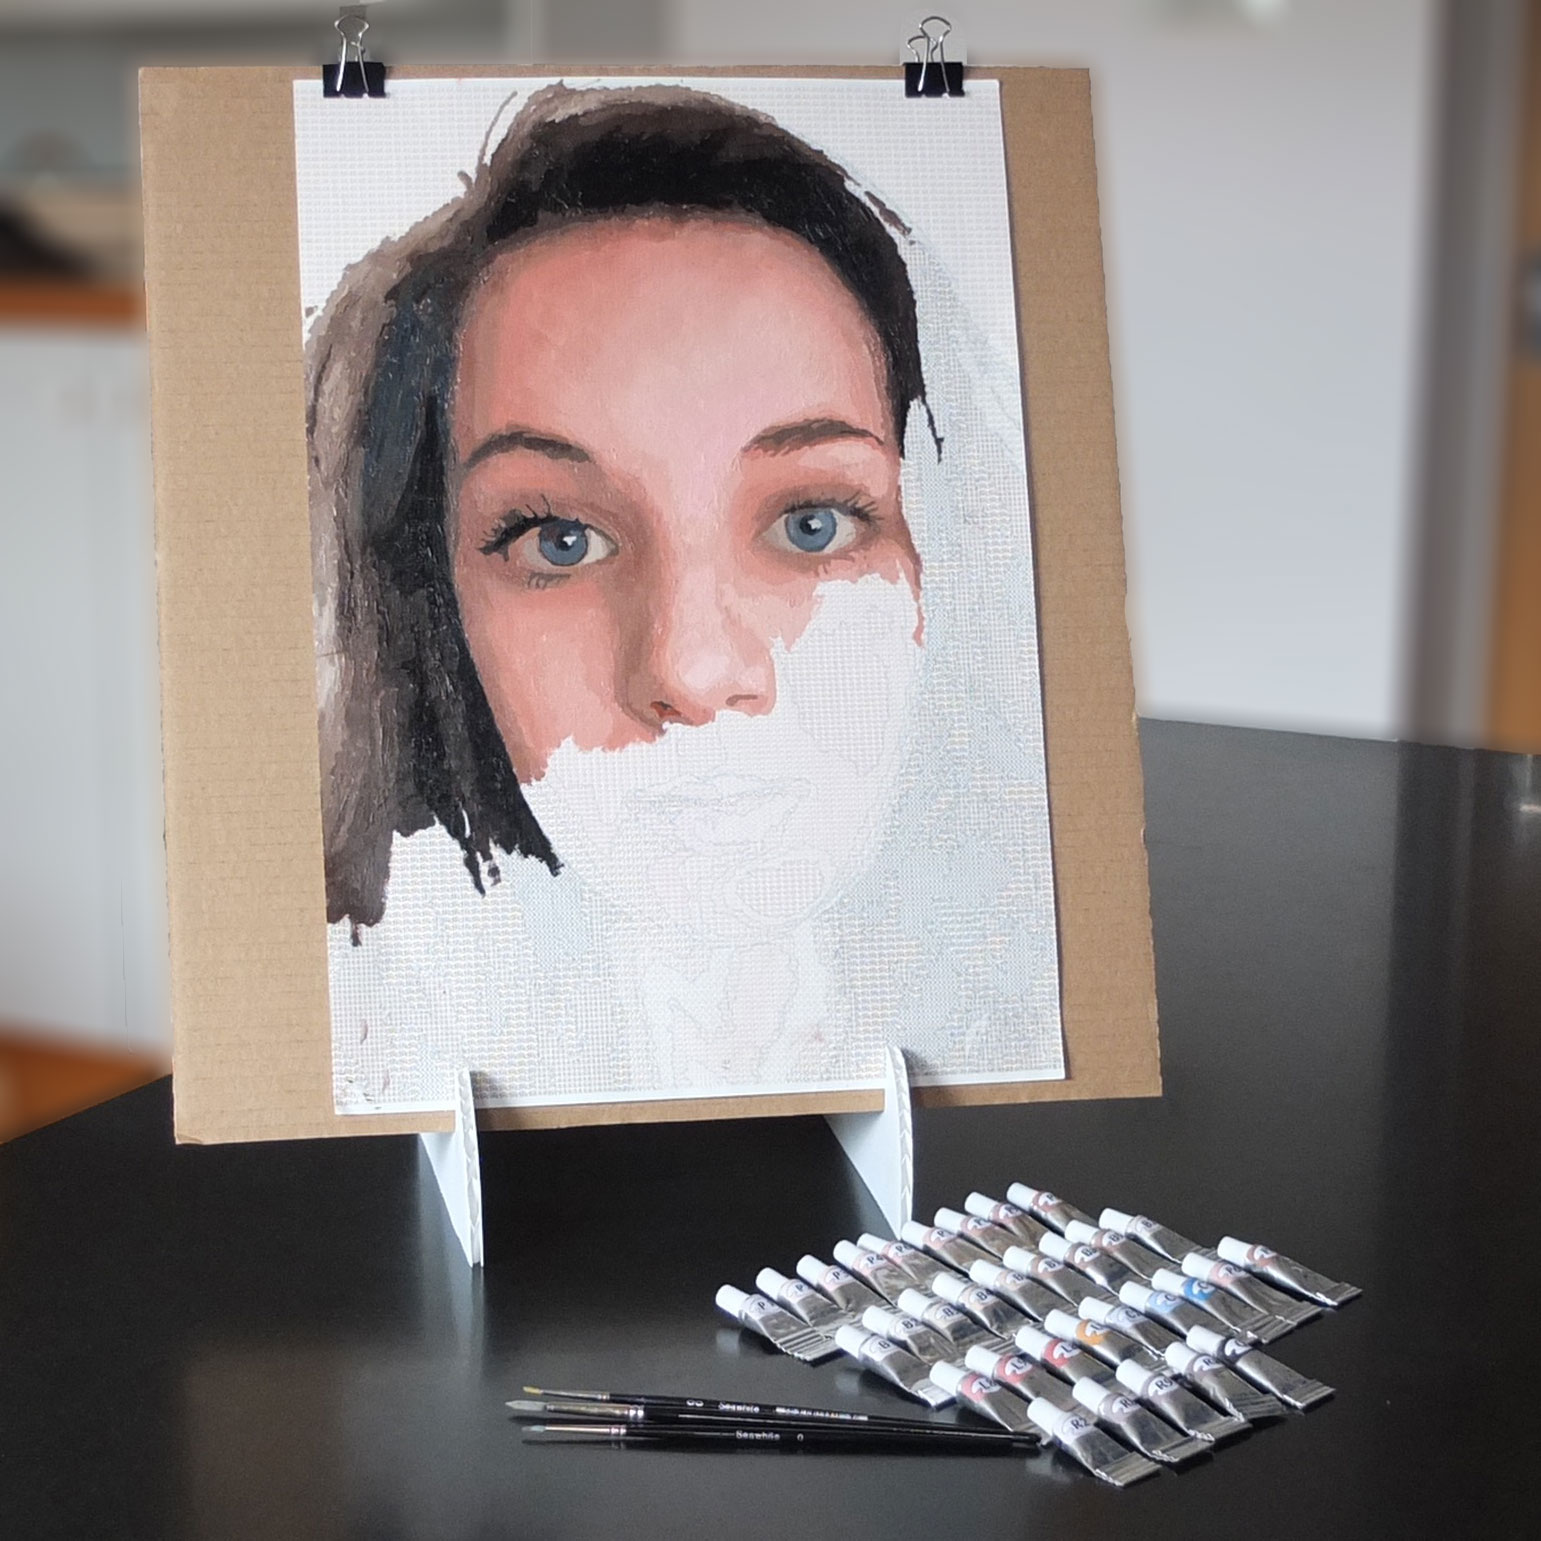 custom painting kits from photo portrait paint by number